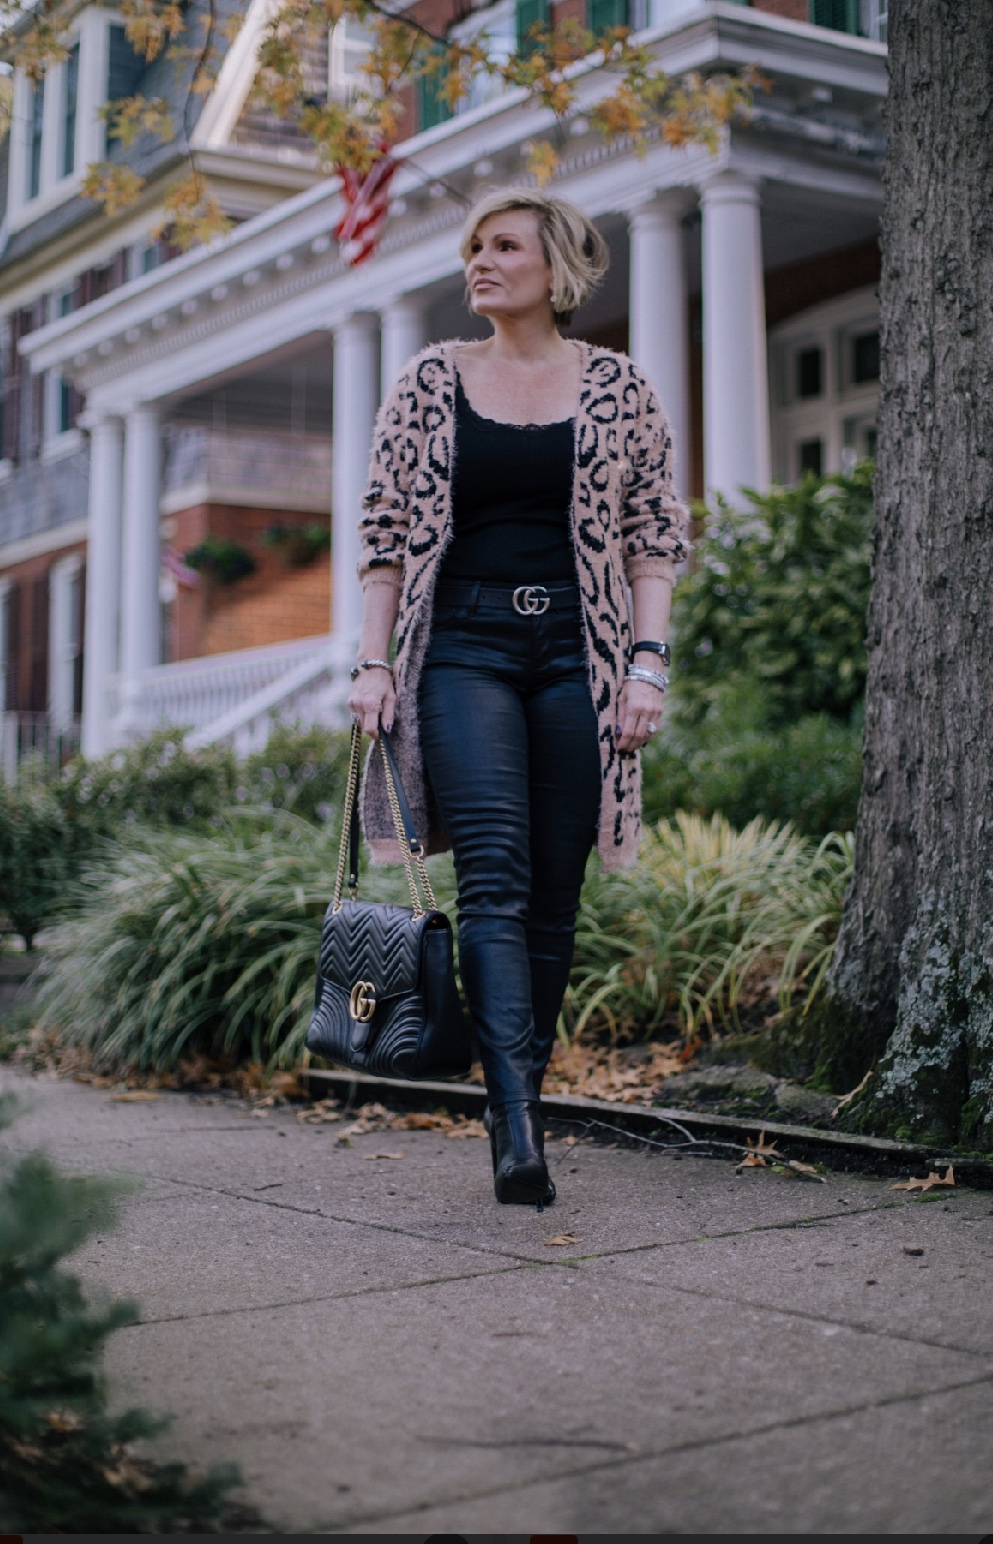 If a more casual look is what you are going for, a fuzzy sweater softens the silhouette. Add your favorite boots and belts an effortlessly chic look. Shop this look  here .